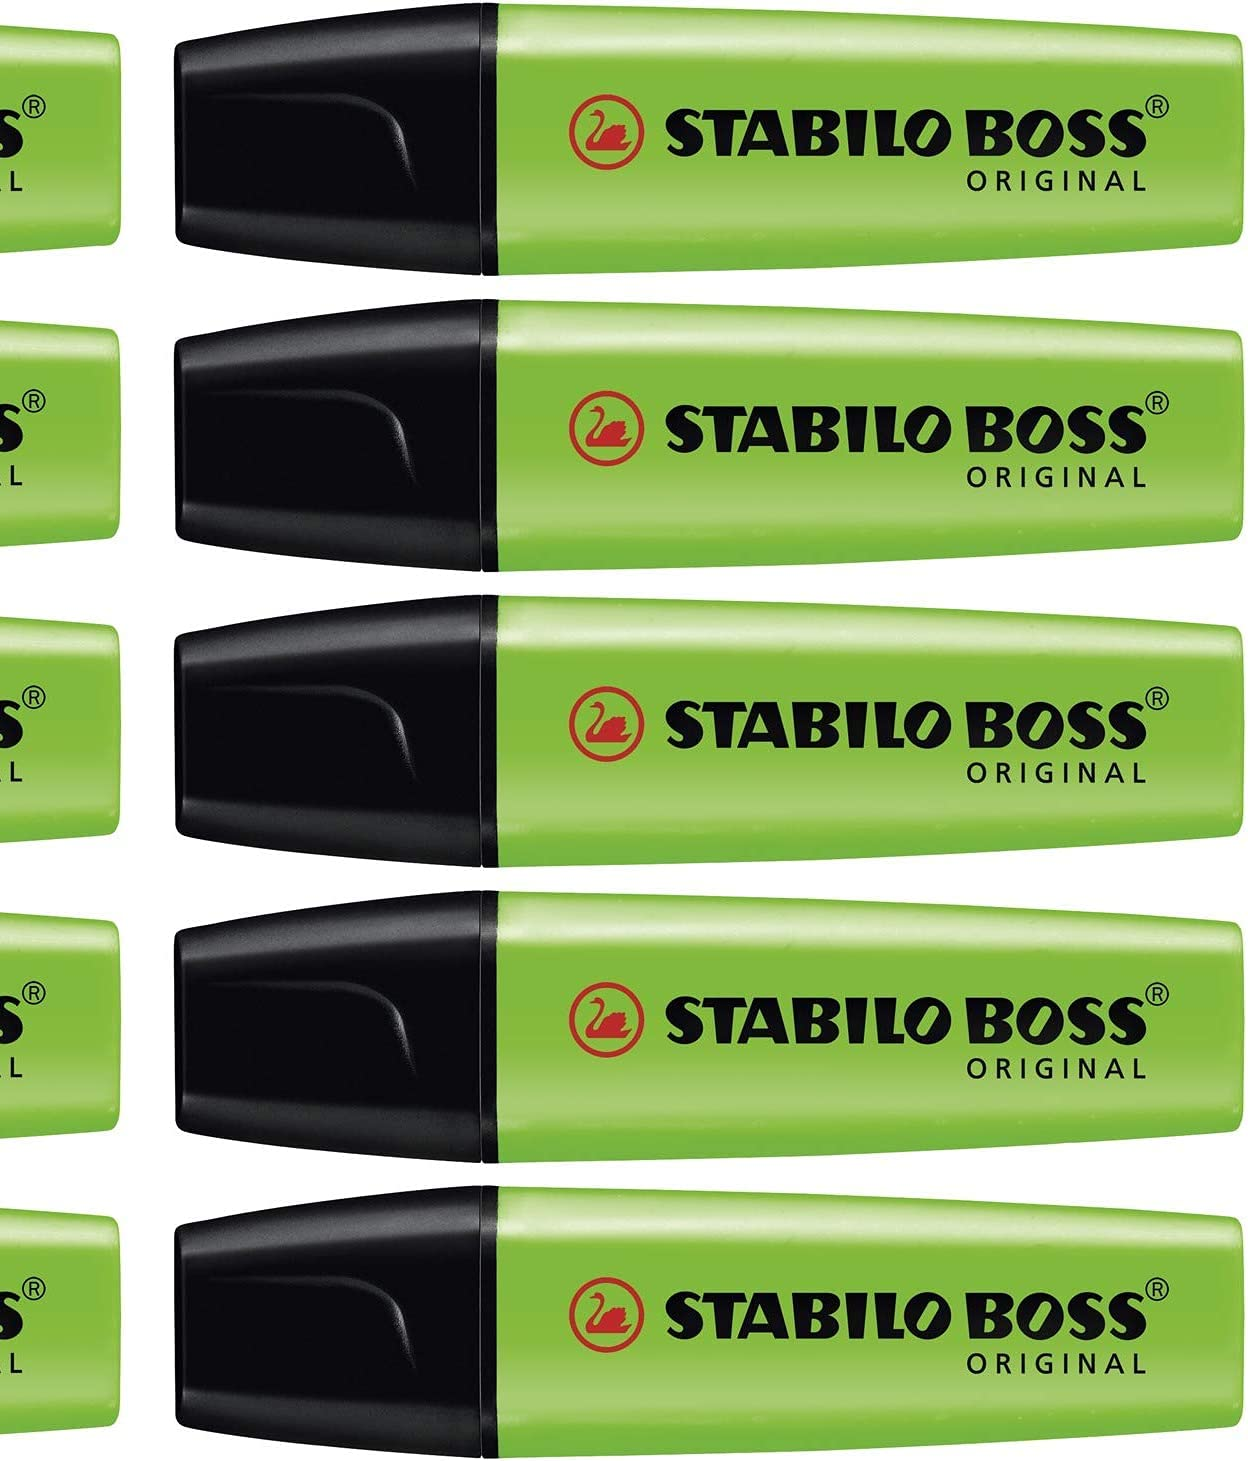 Stocks of stabilo boss highlighters 30 New Colors Yellow Blue Green Orange